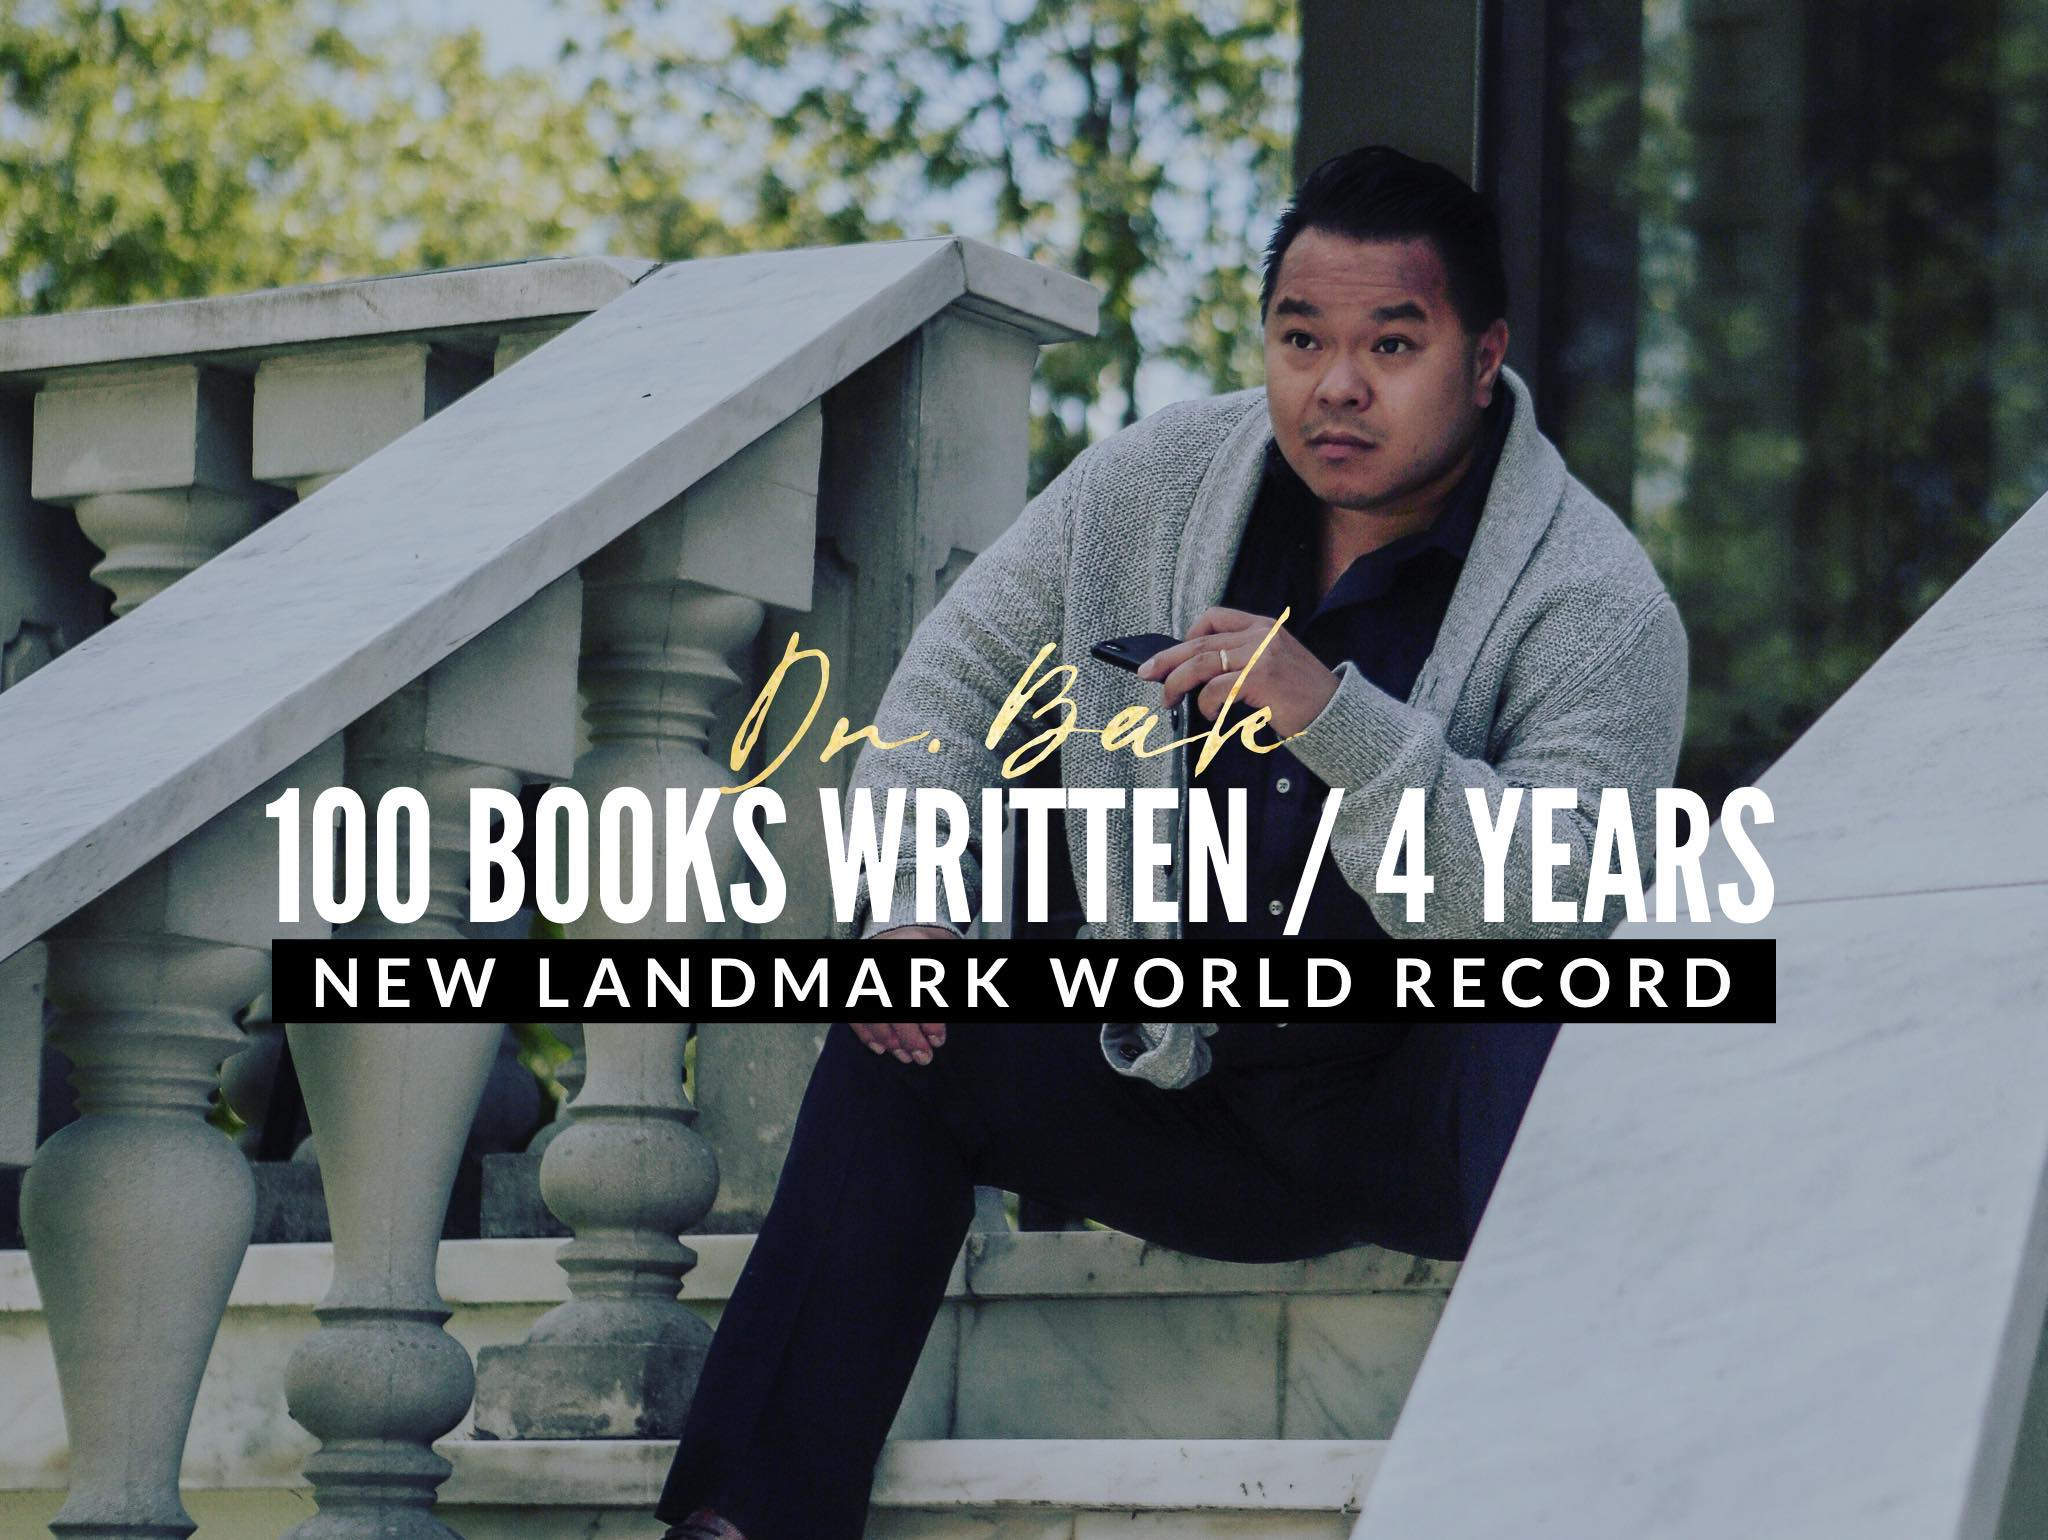 Mdex Founder and Host of the Alpha Show, Dr. Bak Nguyen Set World Record of 100 Books in 4 Years